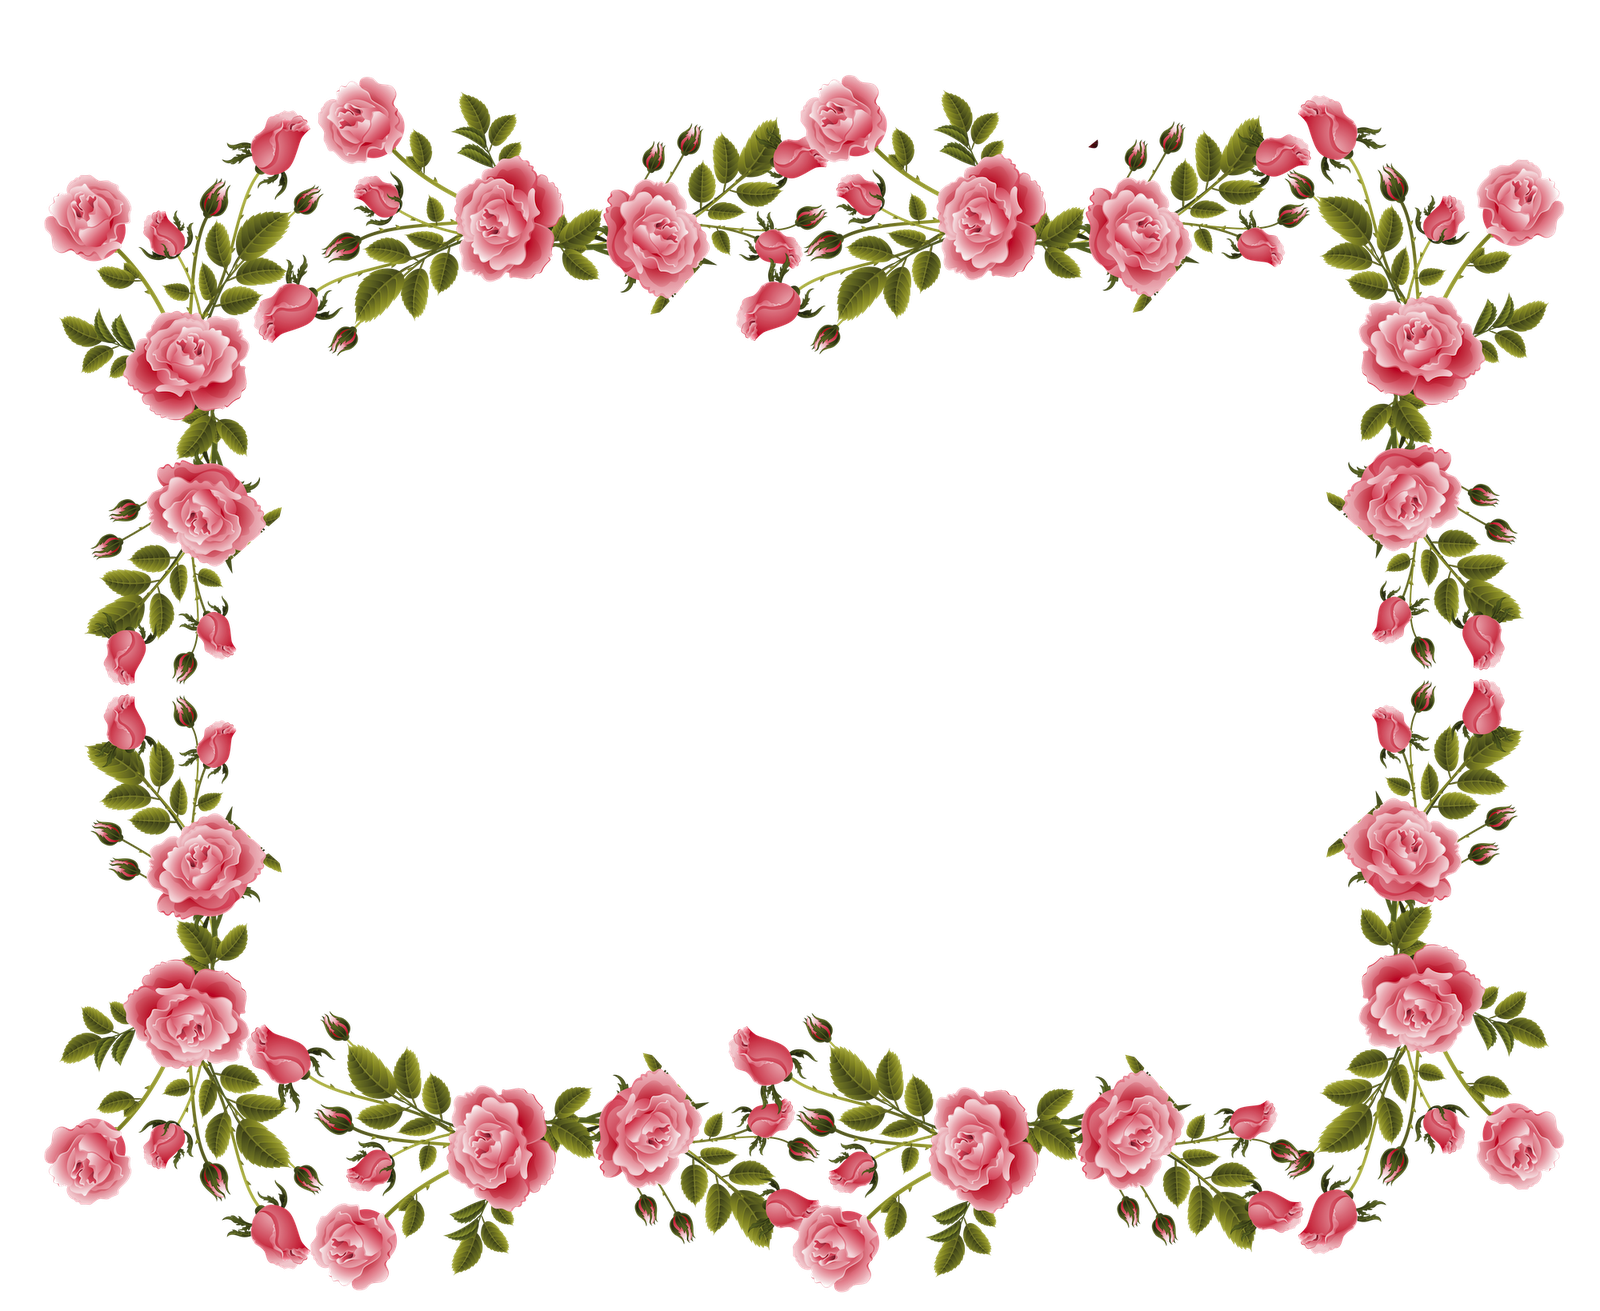 Free download flower border svg library download Border Frame Rose Flower free image svg library download